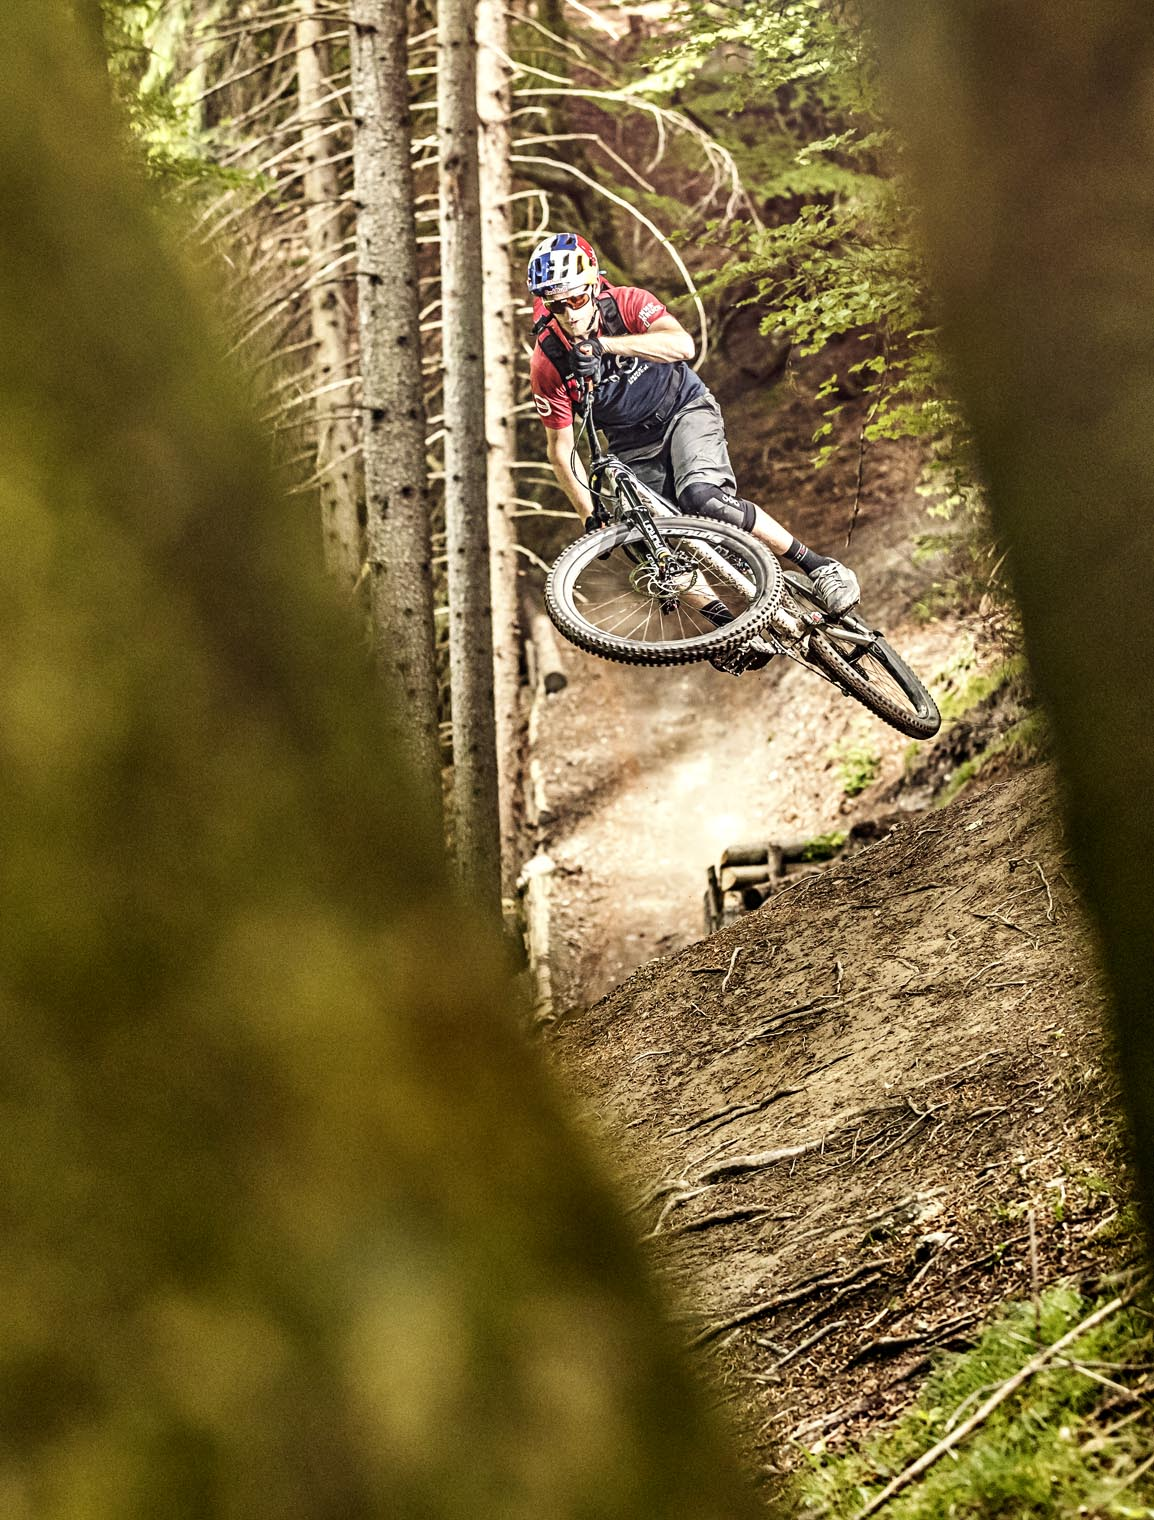 sheep_innsbruck_crankworx_tom_öhler_arzler_alm_trail